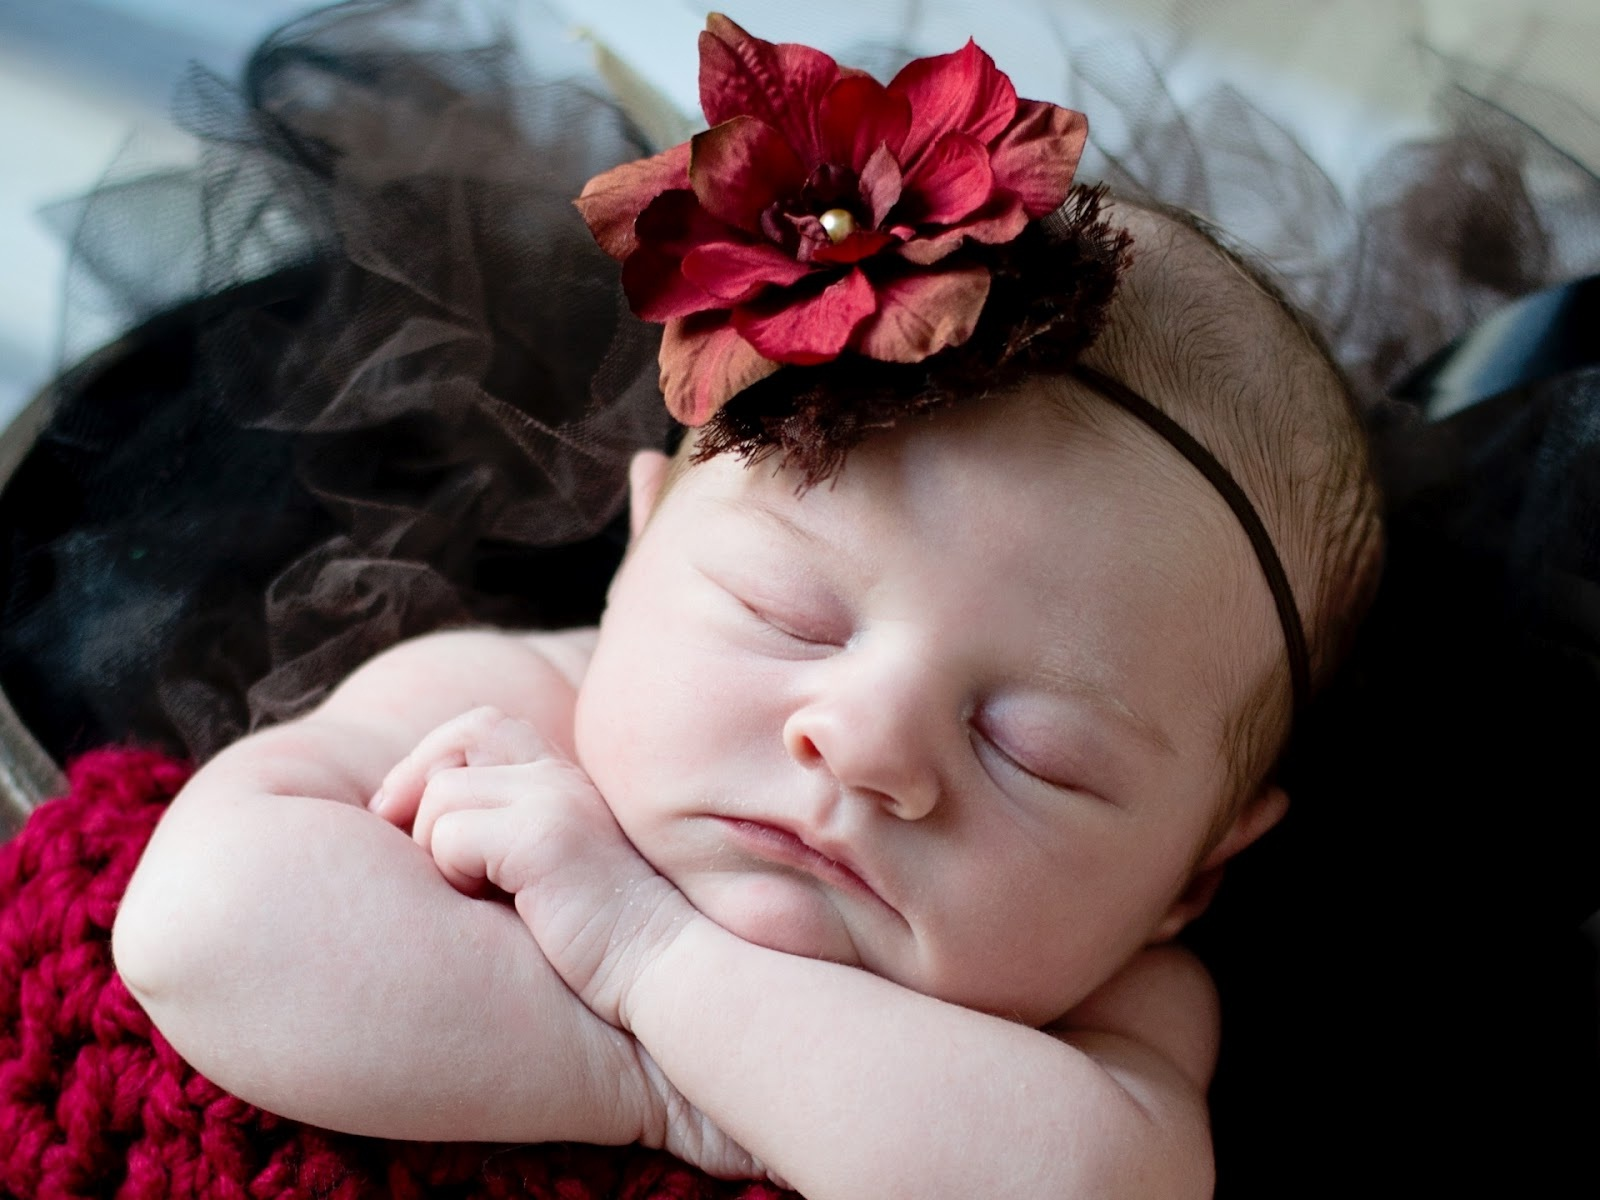 Cute Sleeping Baby Wallpapers First Hd Wallpapers 1600x1200